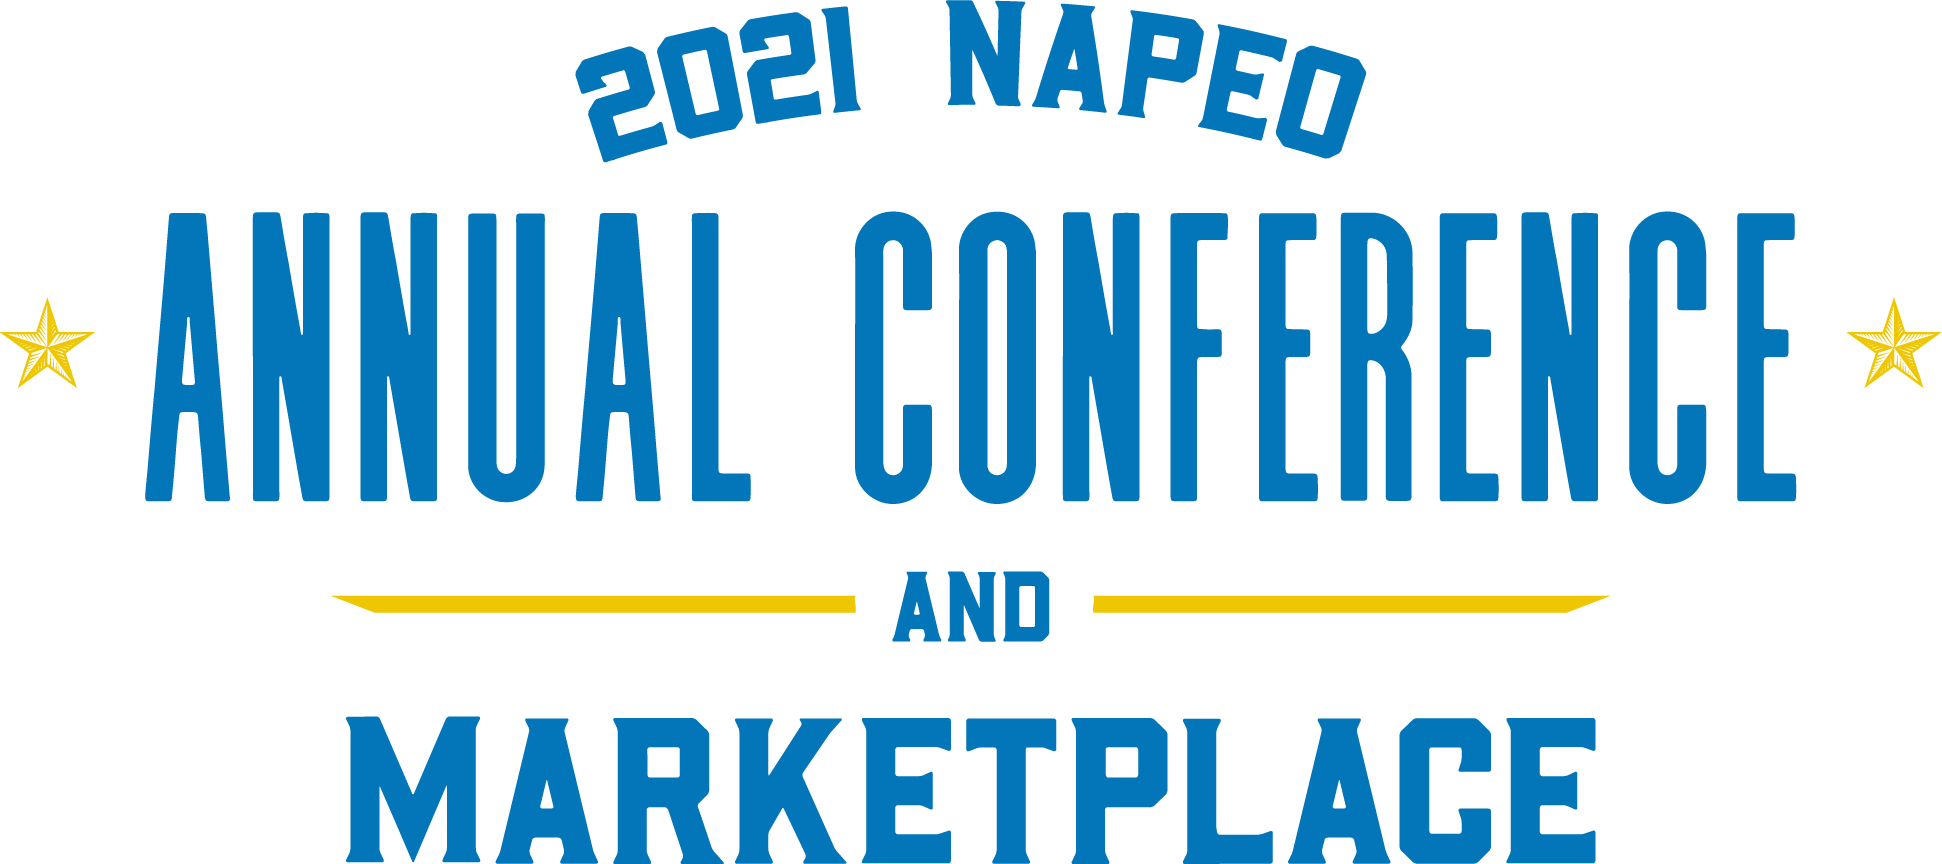 2021 NAPEO Annual Conference and Marketplace